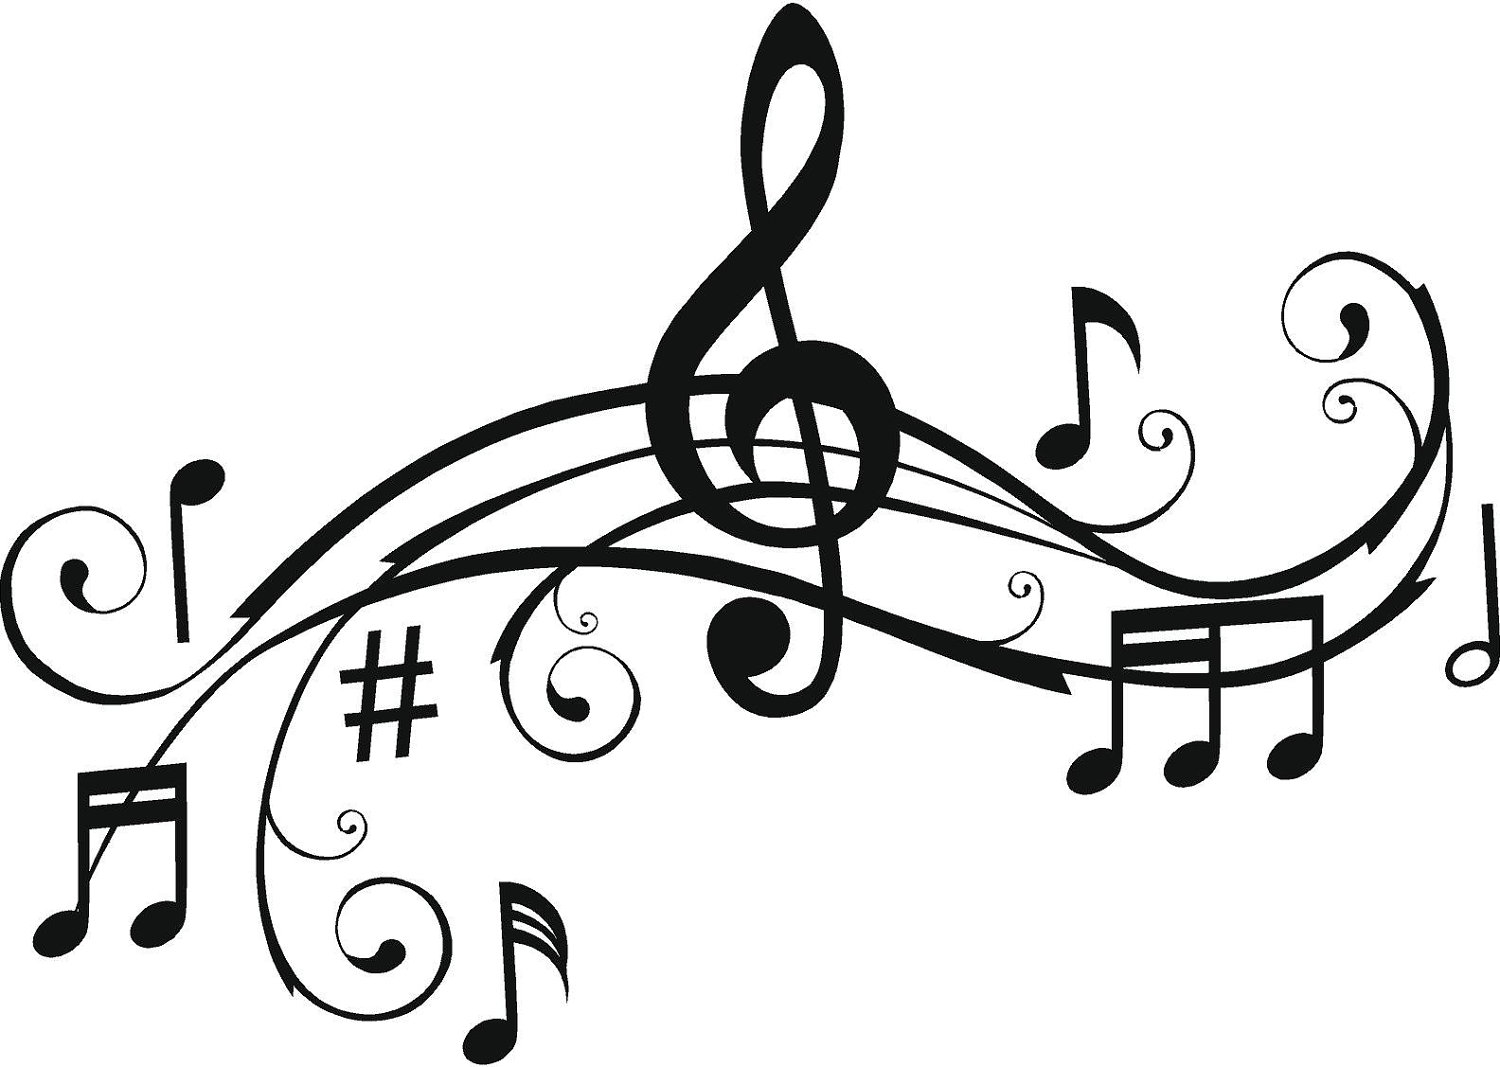 music emblems clipart - photo #40